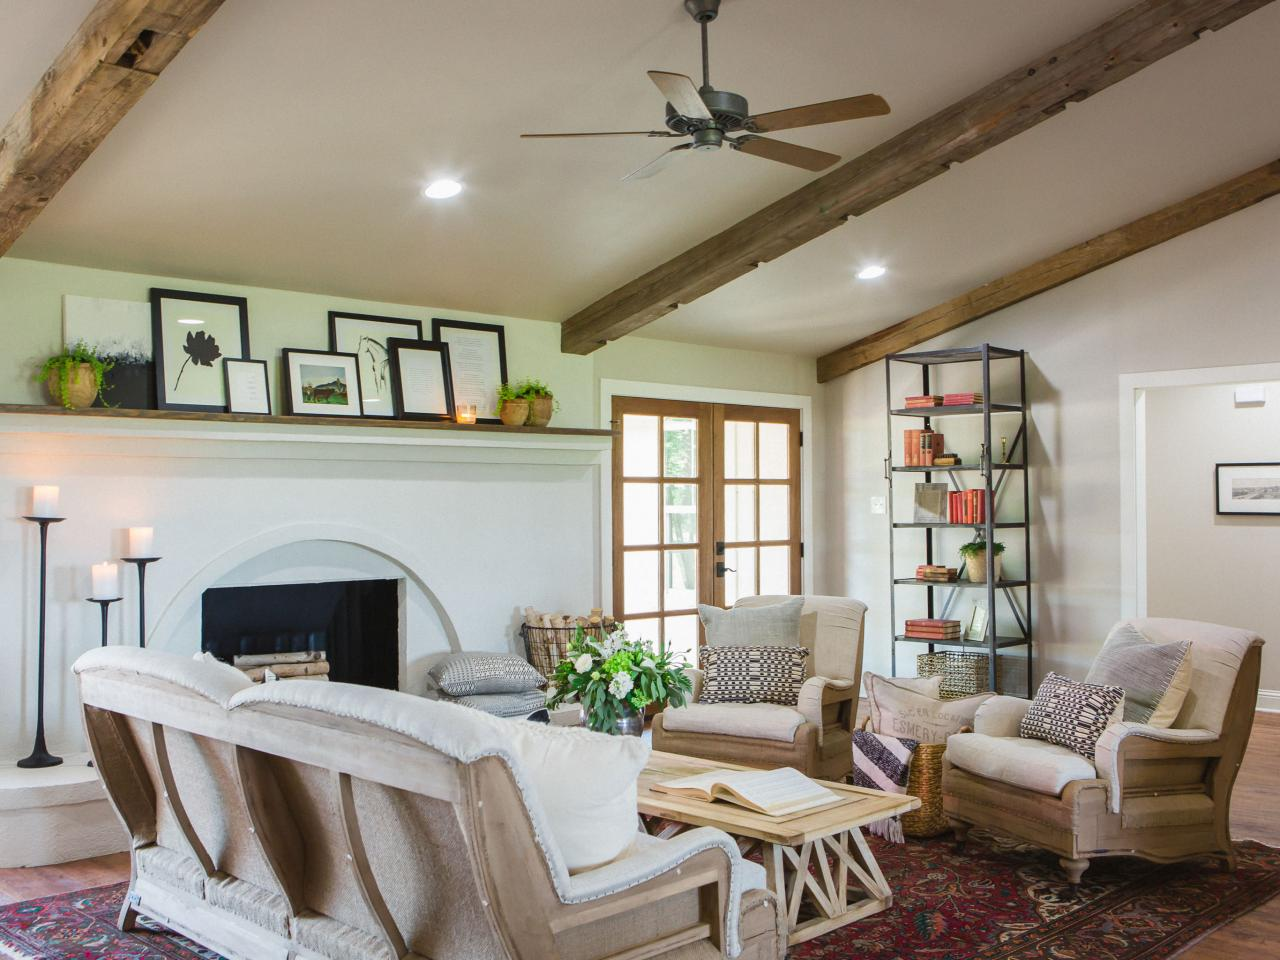 These Fixer Upper Home Trends Are A Total Waste Of Money